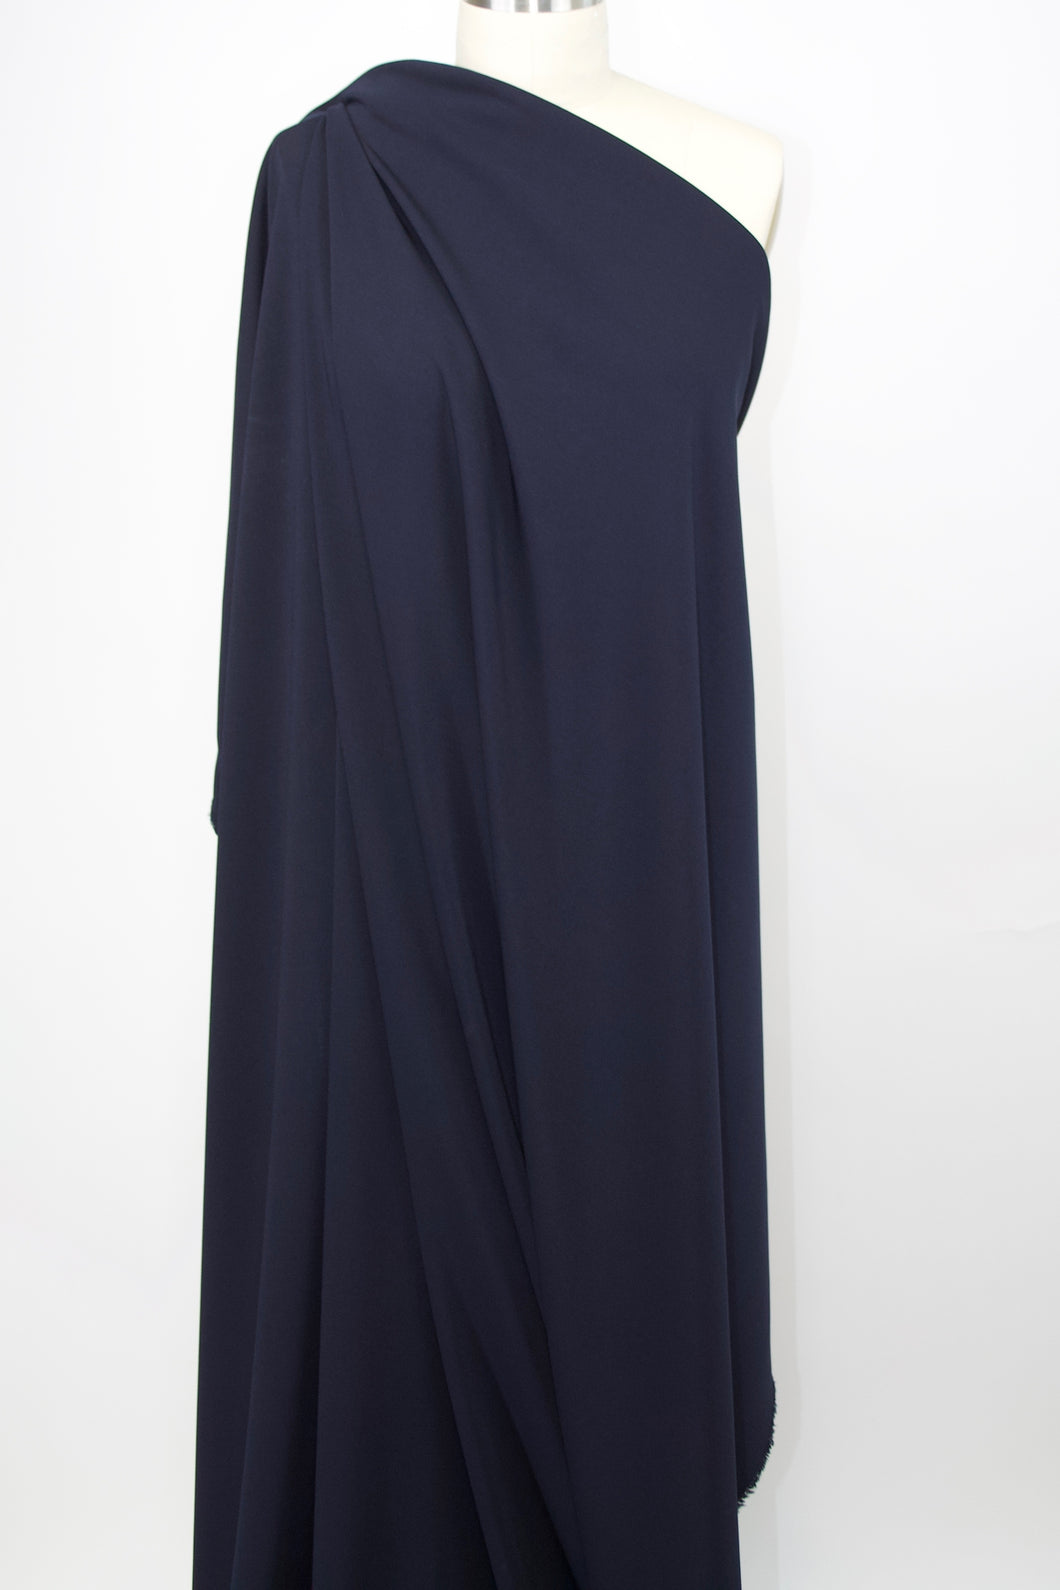 Designer Rayon Double Knit - Navy Blue